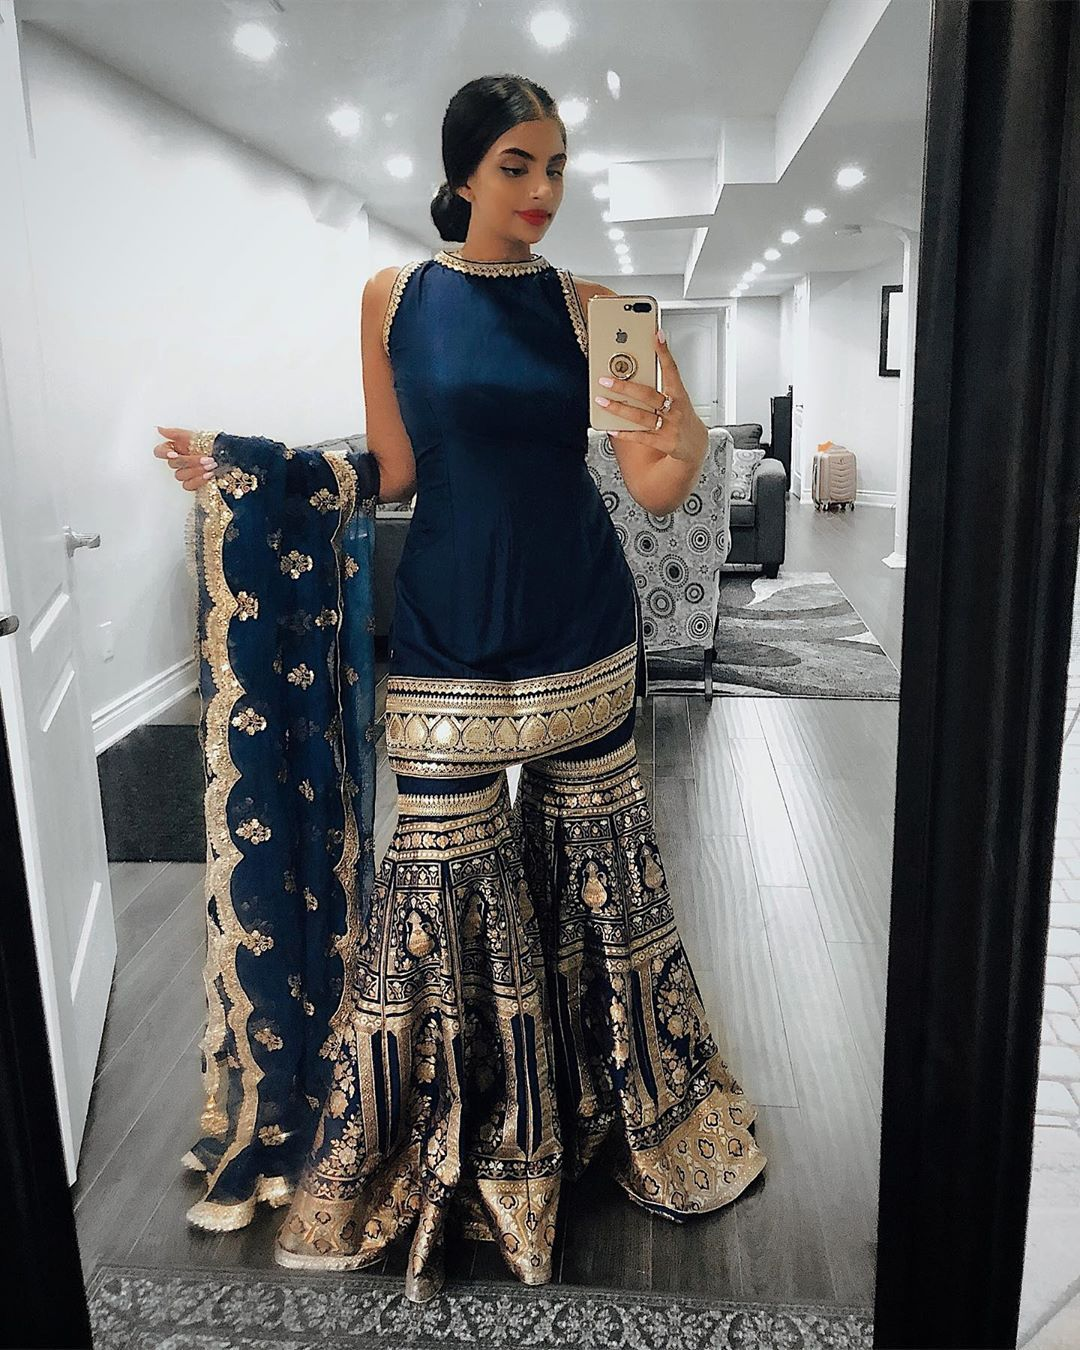 """Ankita on Instagram: """"Still not done with this outfit! You guys know how much I love my gharara/shararas and switching it up to pair them with lehenga/saree…"""" #shararadesigns"""